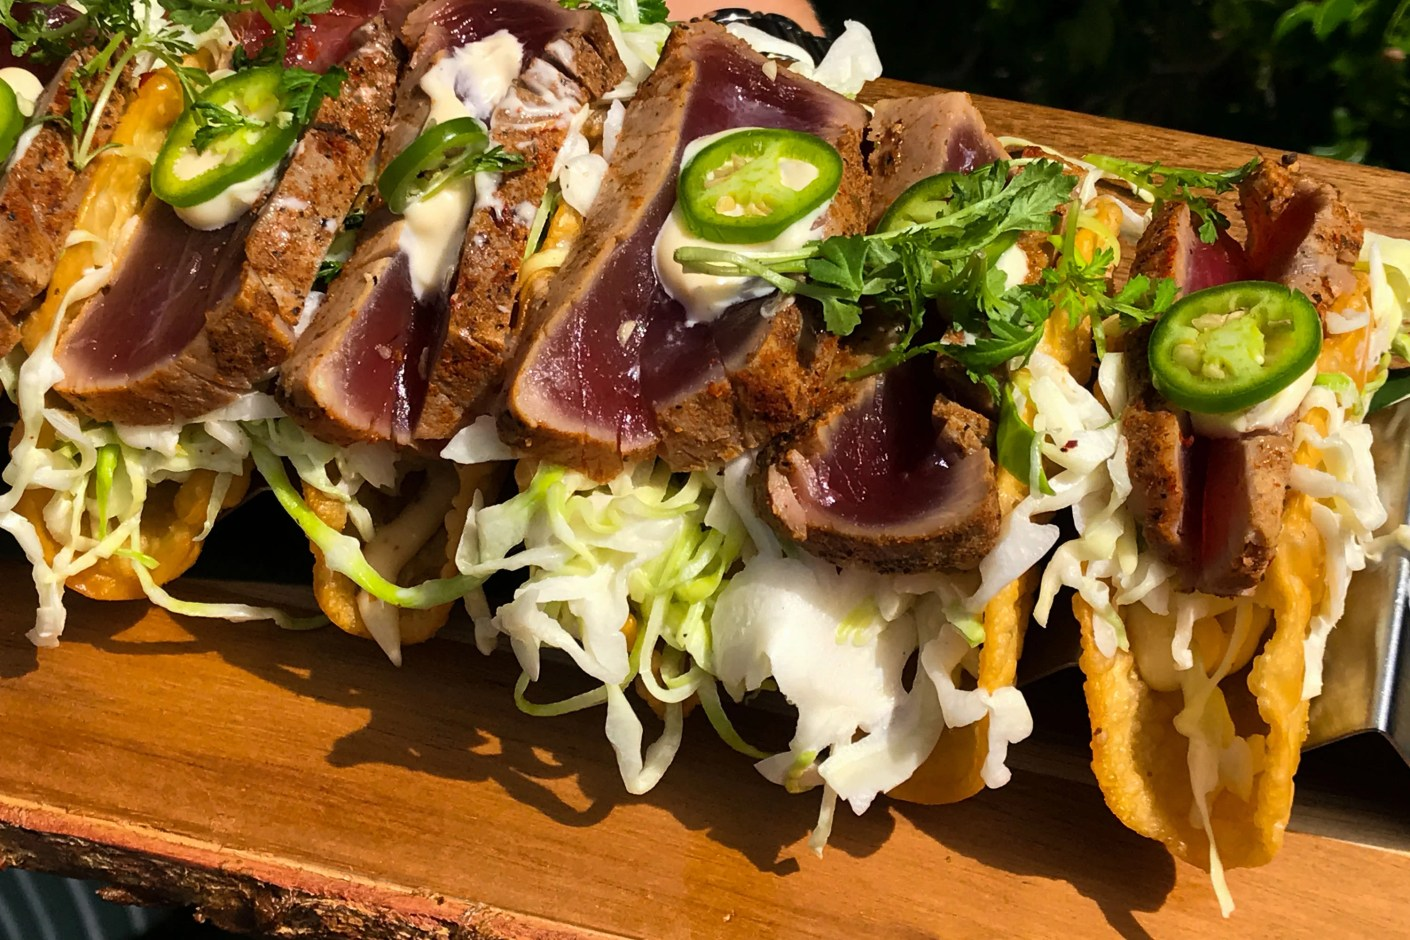 Finally got to try the mini seared ahi tuna tacos. (Photo by Patrick T. Fallon/The Points Guy)